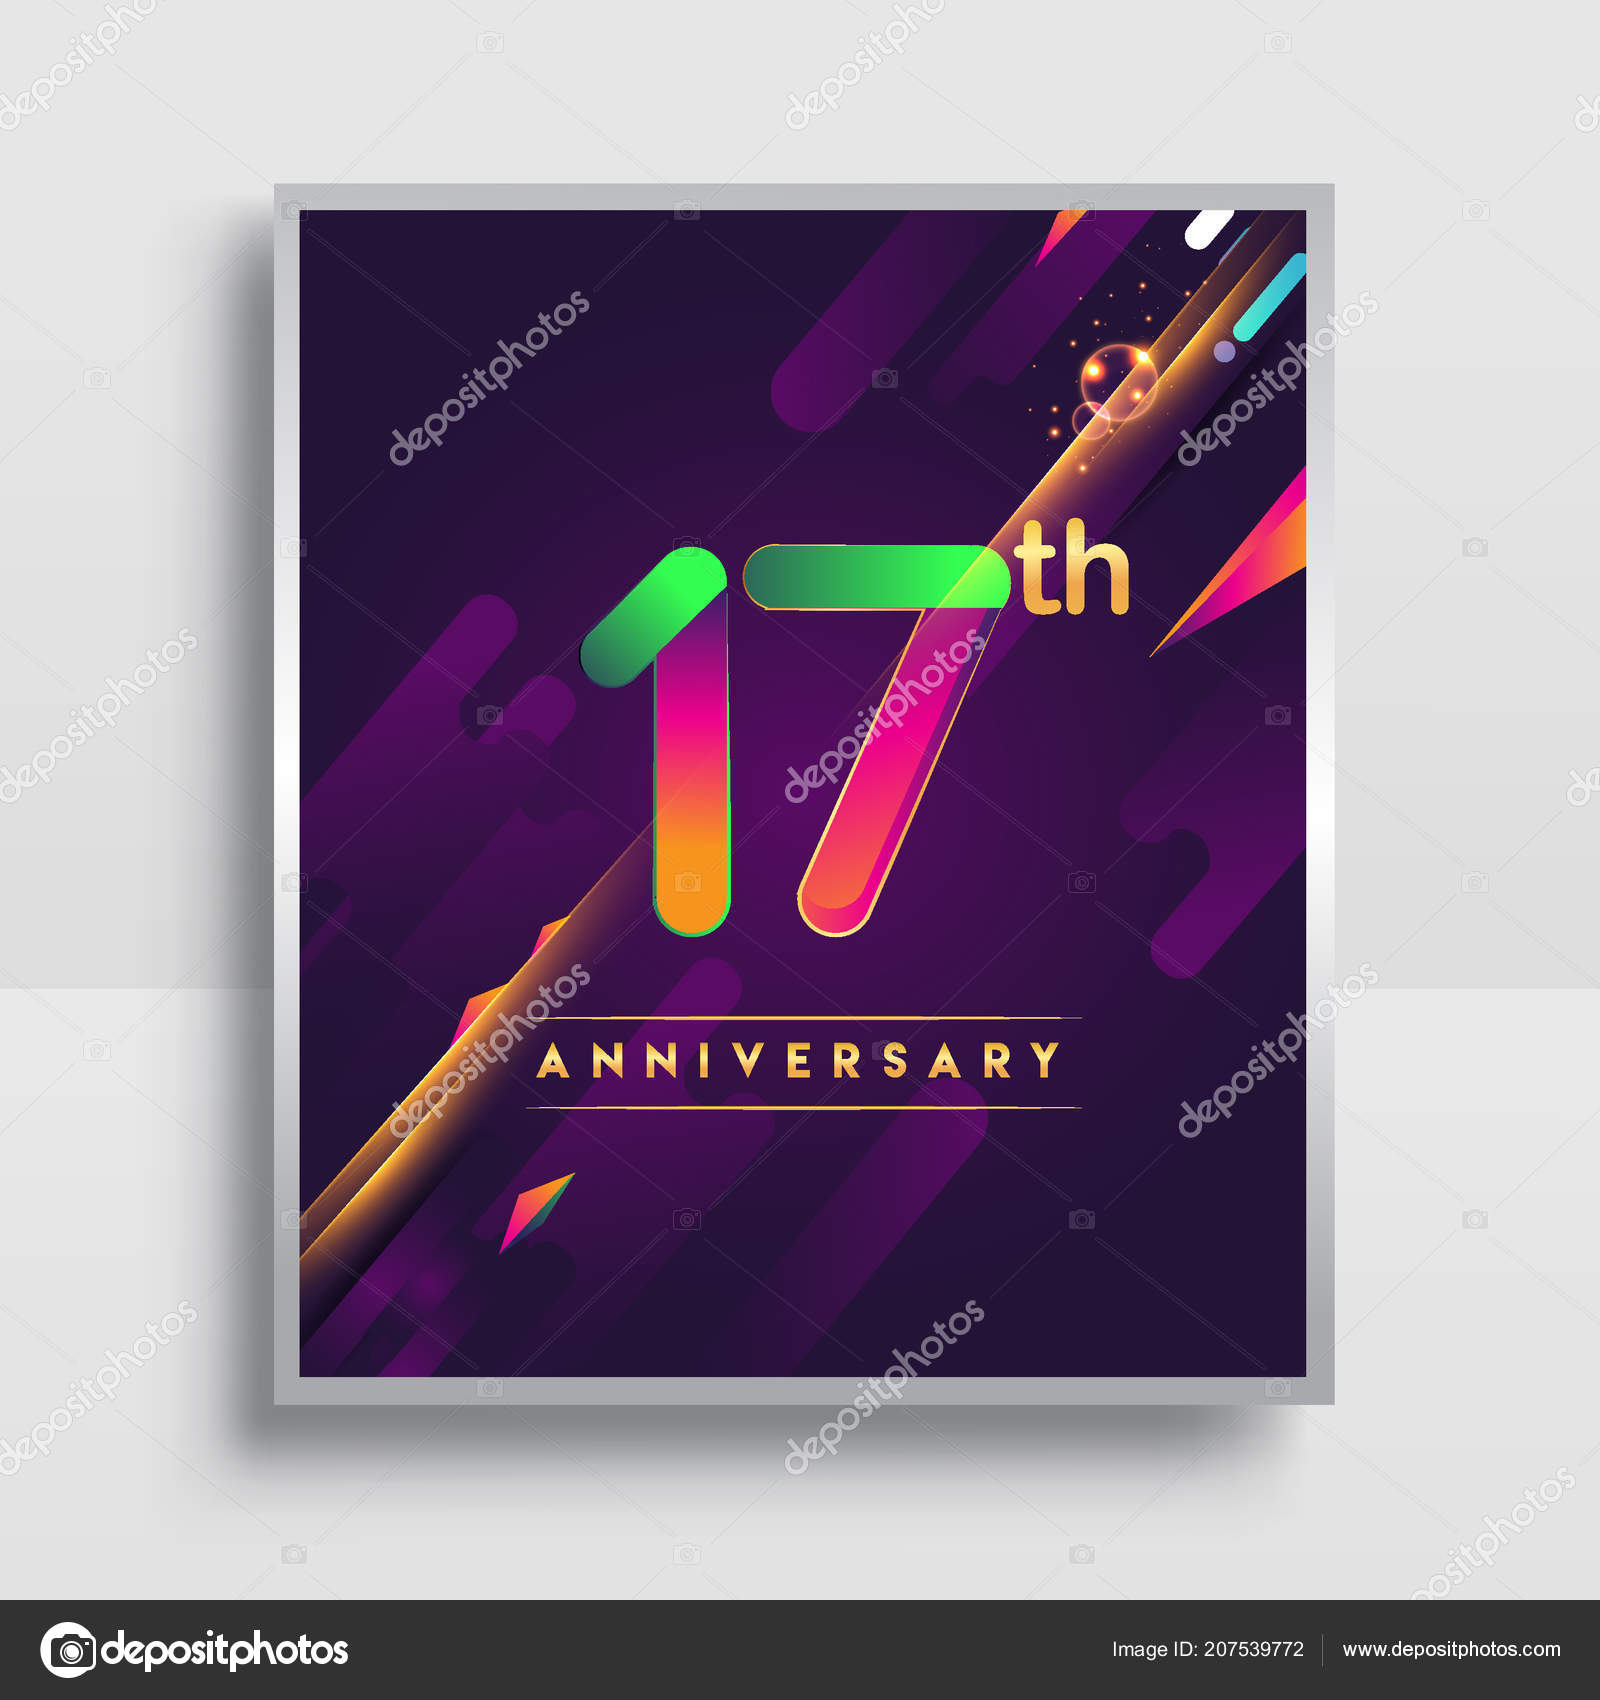 Years anniversary logo vector design invitation poster nineteen 17 years anniversary logo vector design for invitation and poster nineteen years birthday celebration with colorful abstract background isolated on white stopboris Choice Image